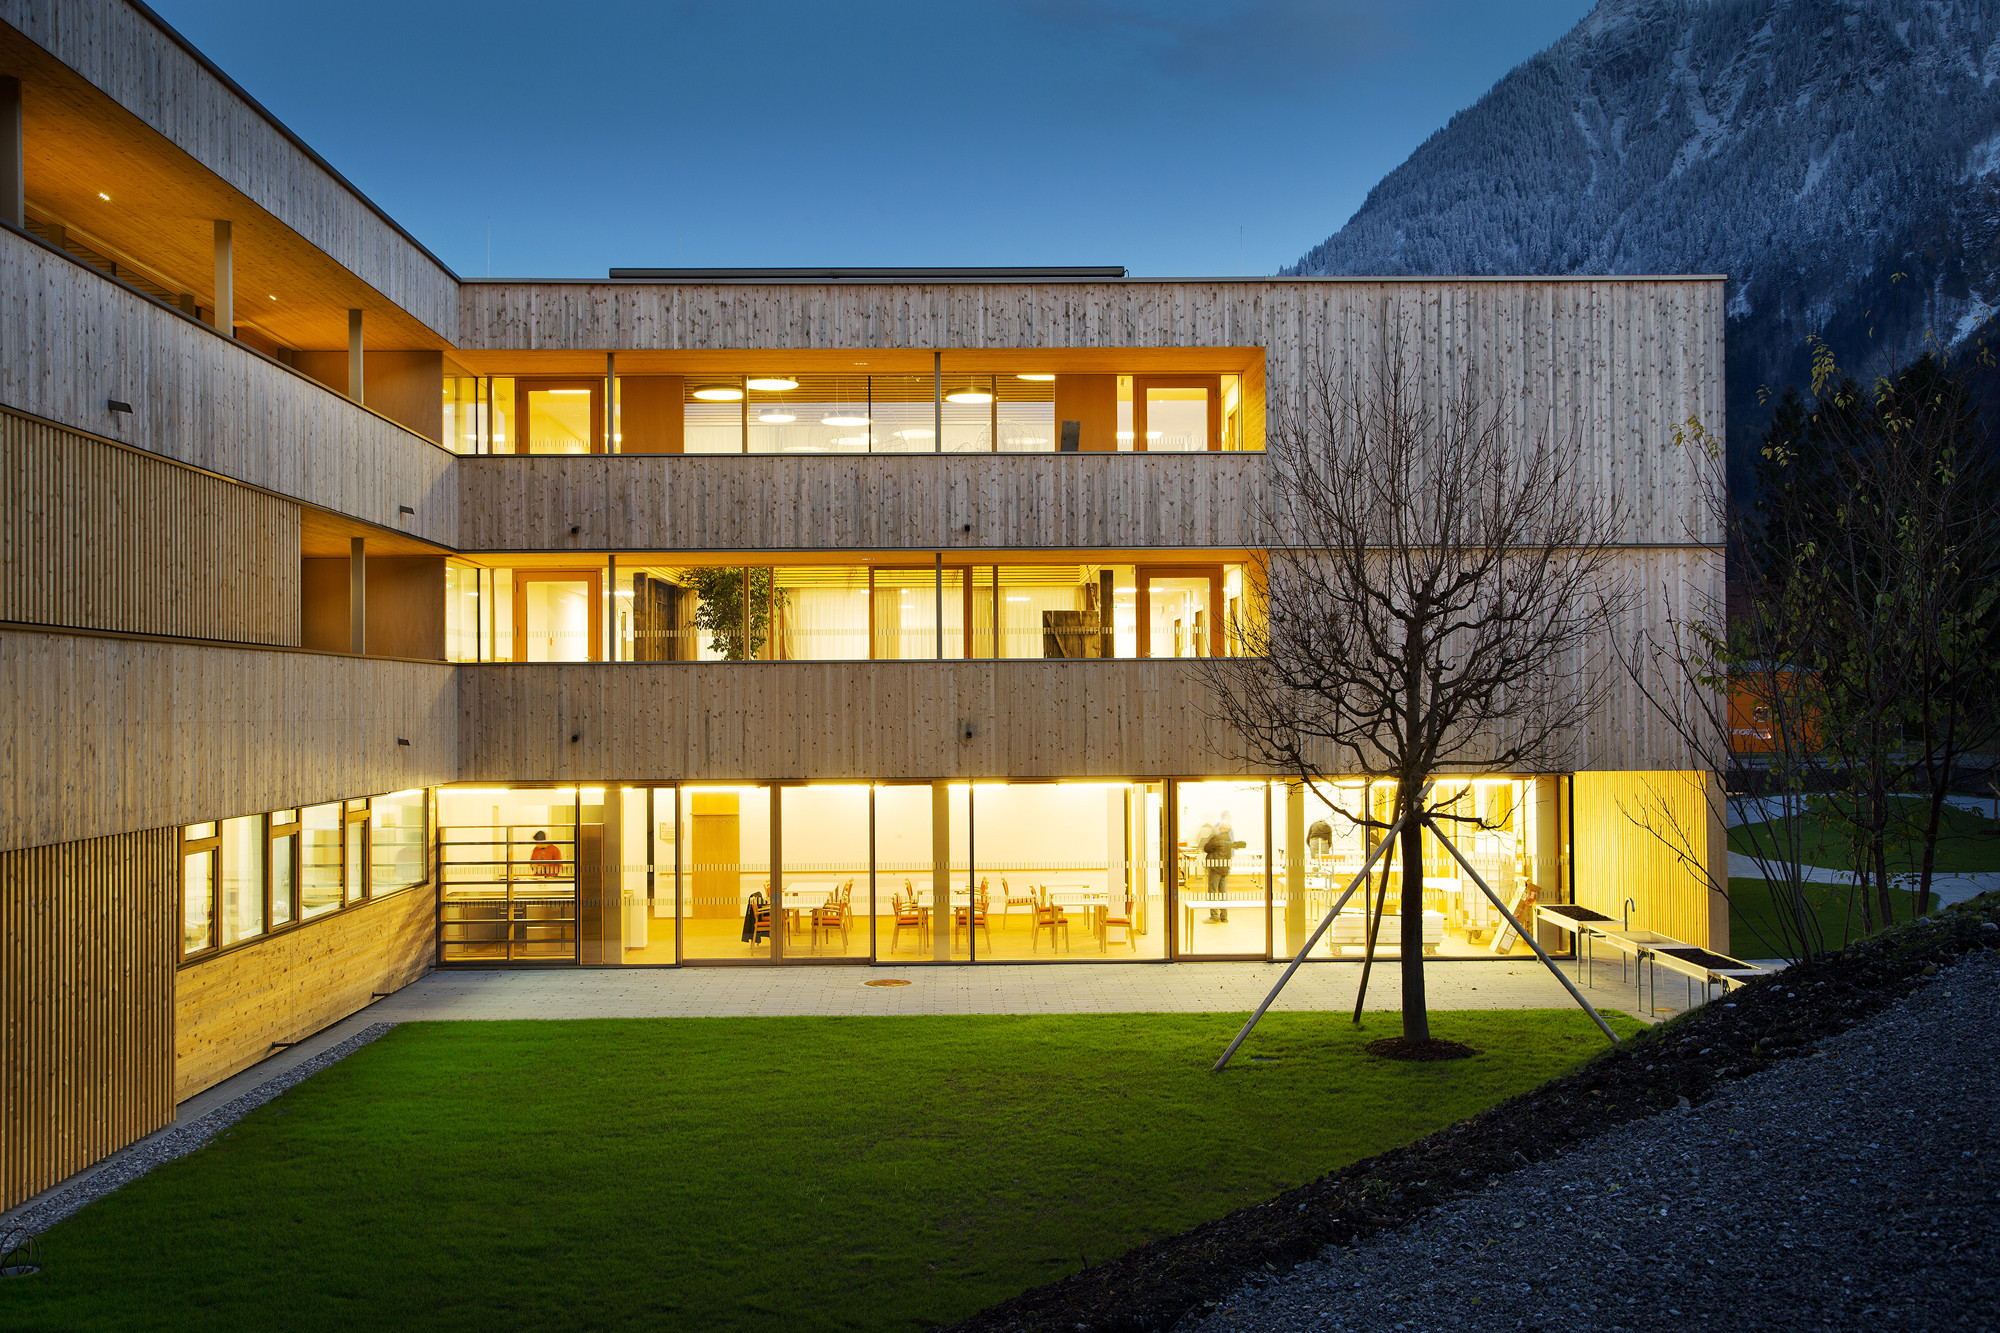 Nenzing Nursing Home / Dietger Wissounig Architects | ArchDaily